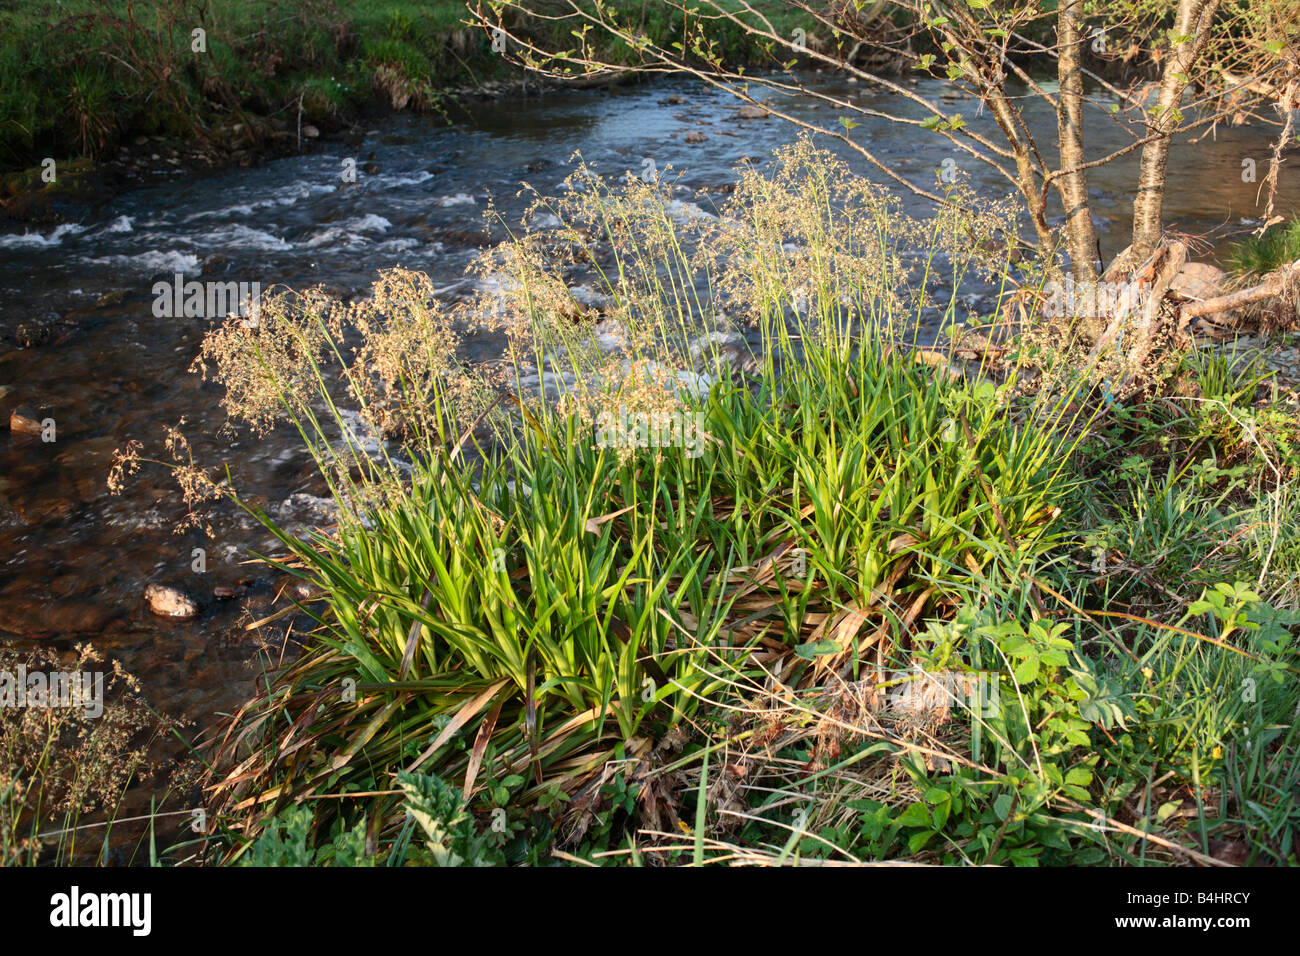 Greater Woodrush (Luzula sylvatica) flowering beside the River Severn. Powys, Wales. - Stock Image